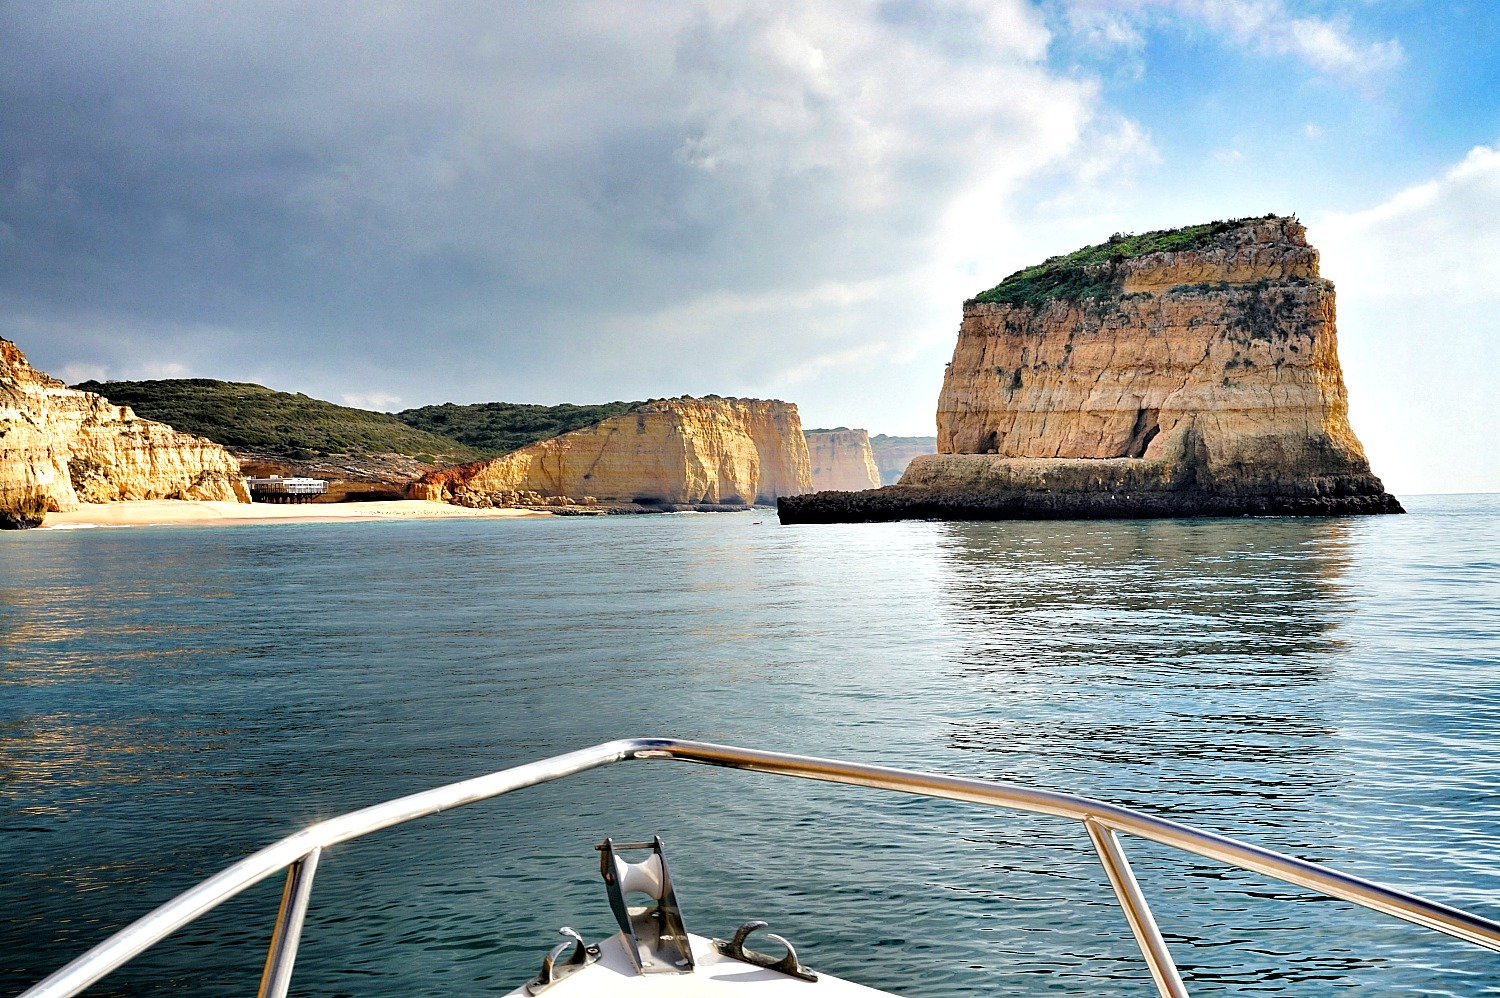 Portugal - one week itinerary. Take a boat tour to truly appreciate the beauty of Algarve.